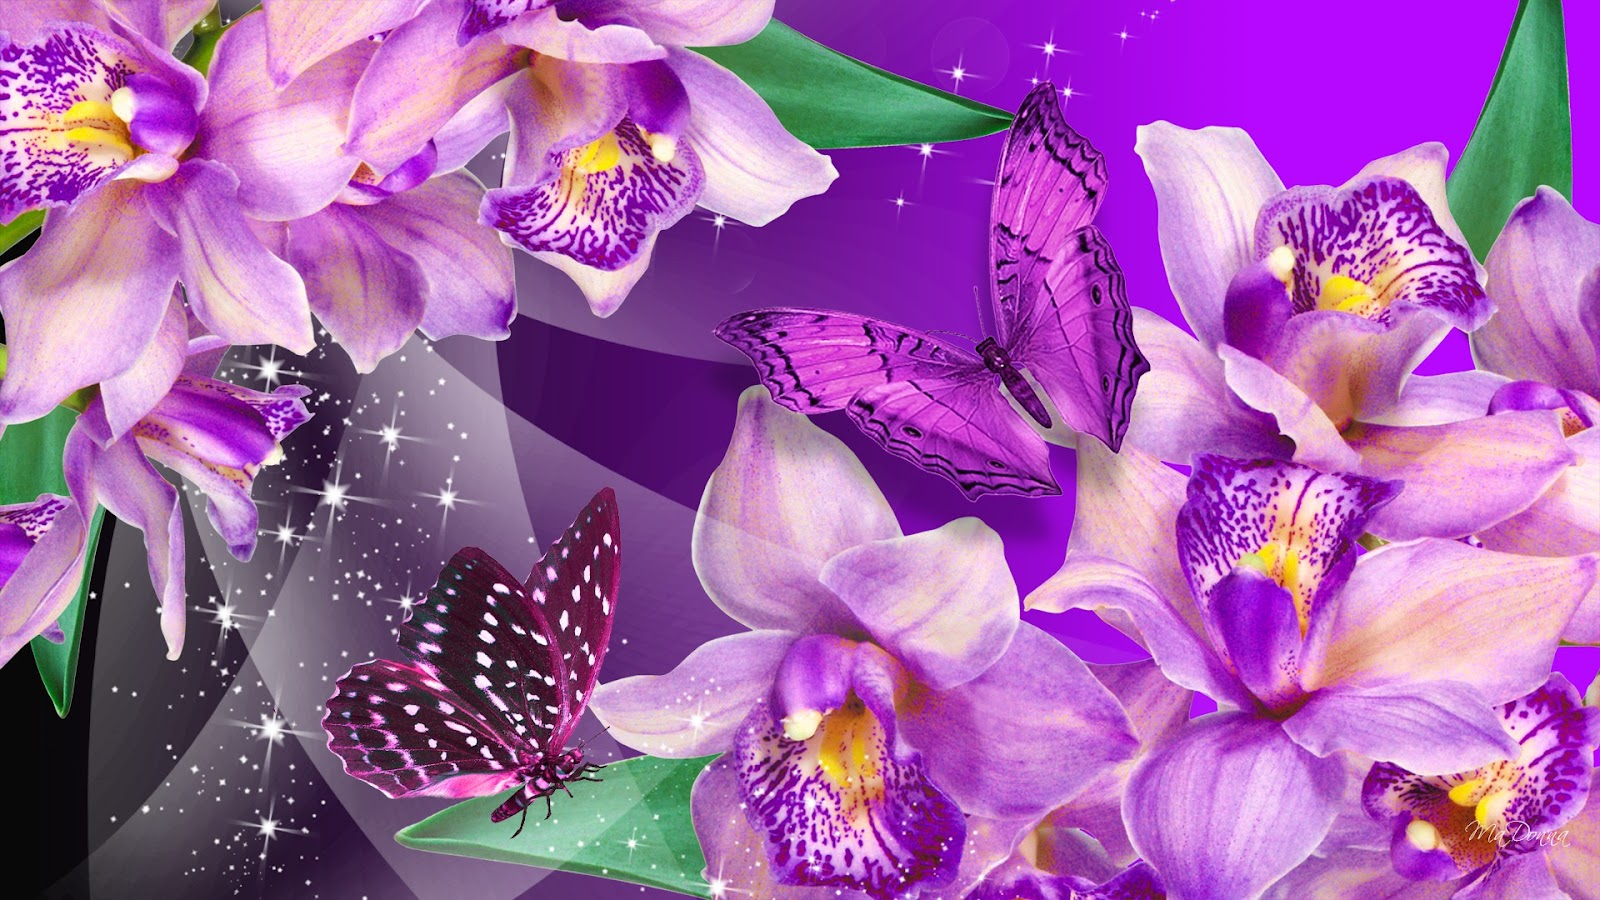 Purple Roses Background Images: HQ DESKTOP WALLPAPERS: January 2013